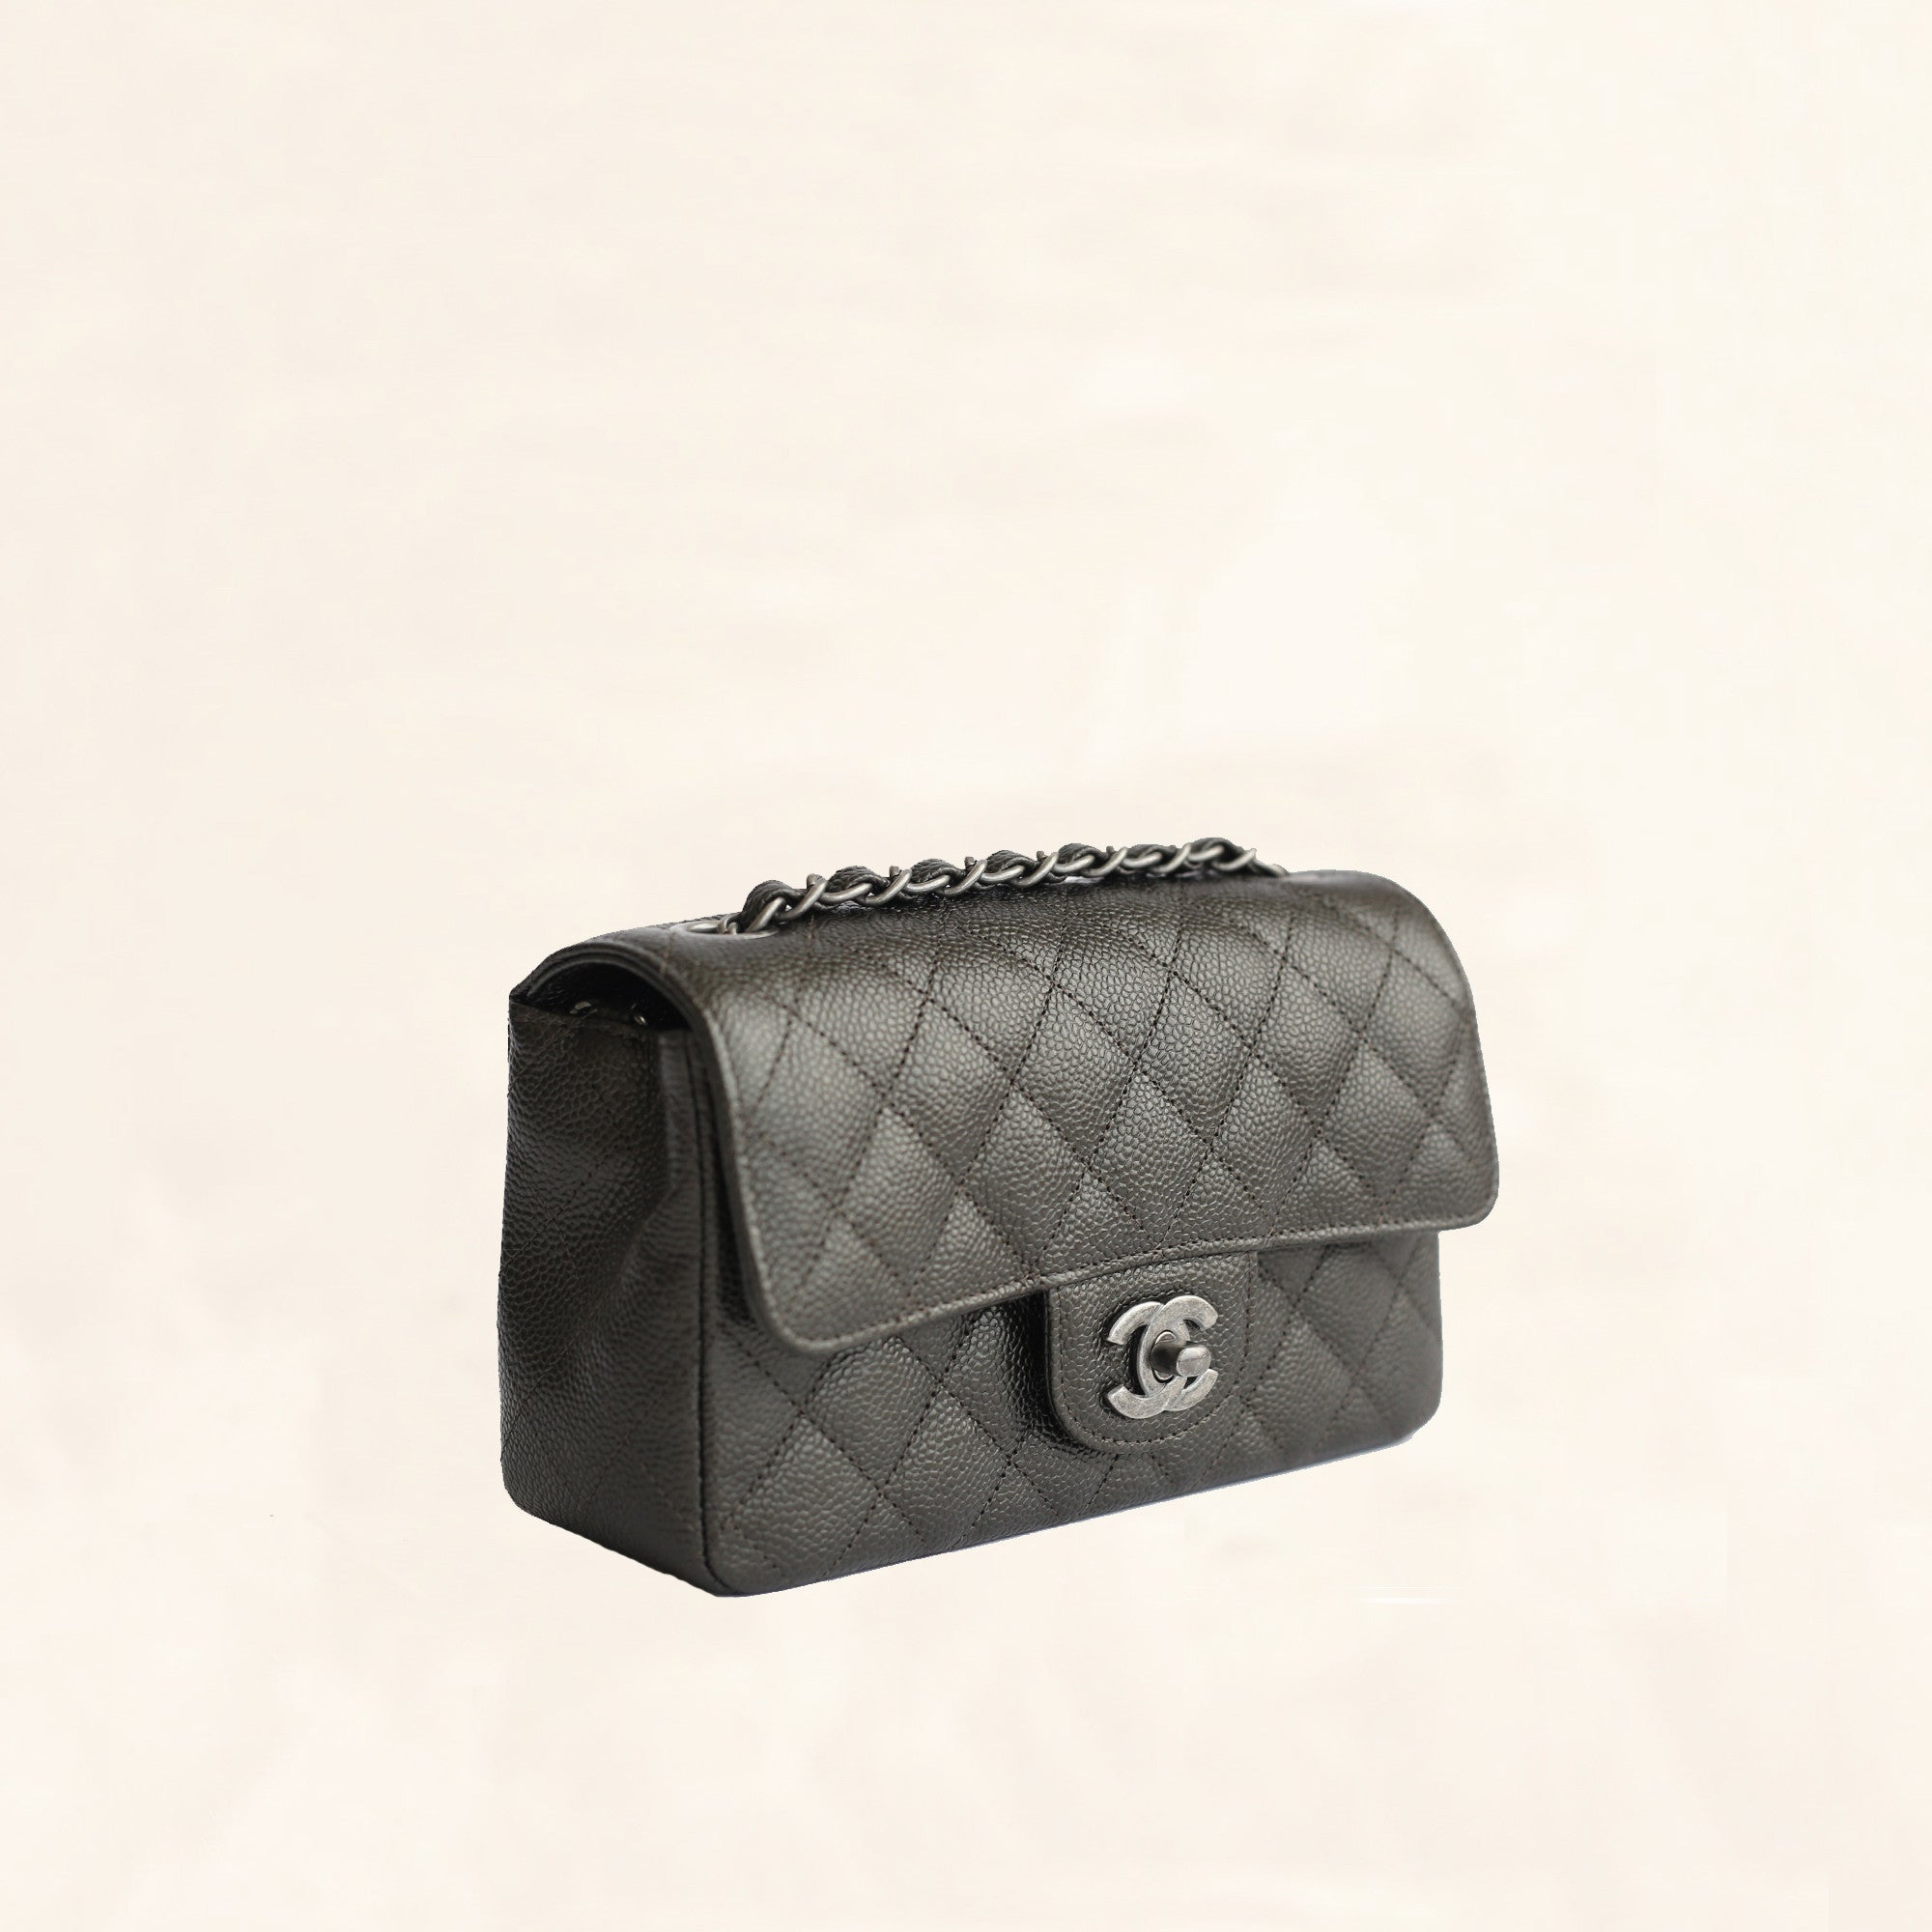 bf6a237c1d0 Chanel   Caviar Mini Rectangular Flap Bag   Black - The-Collectory